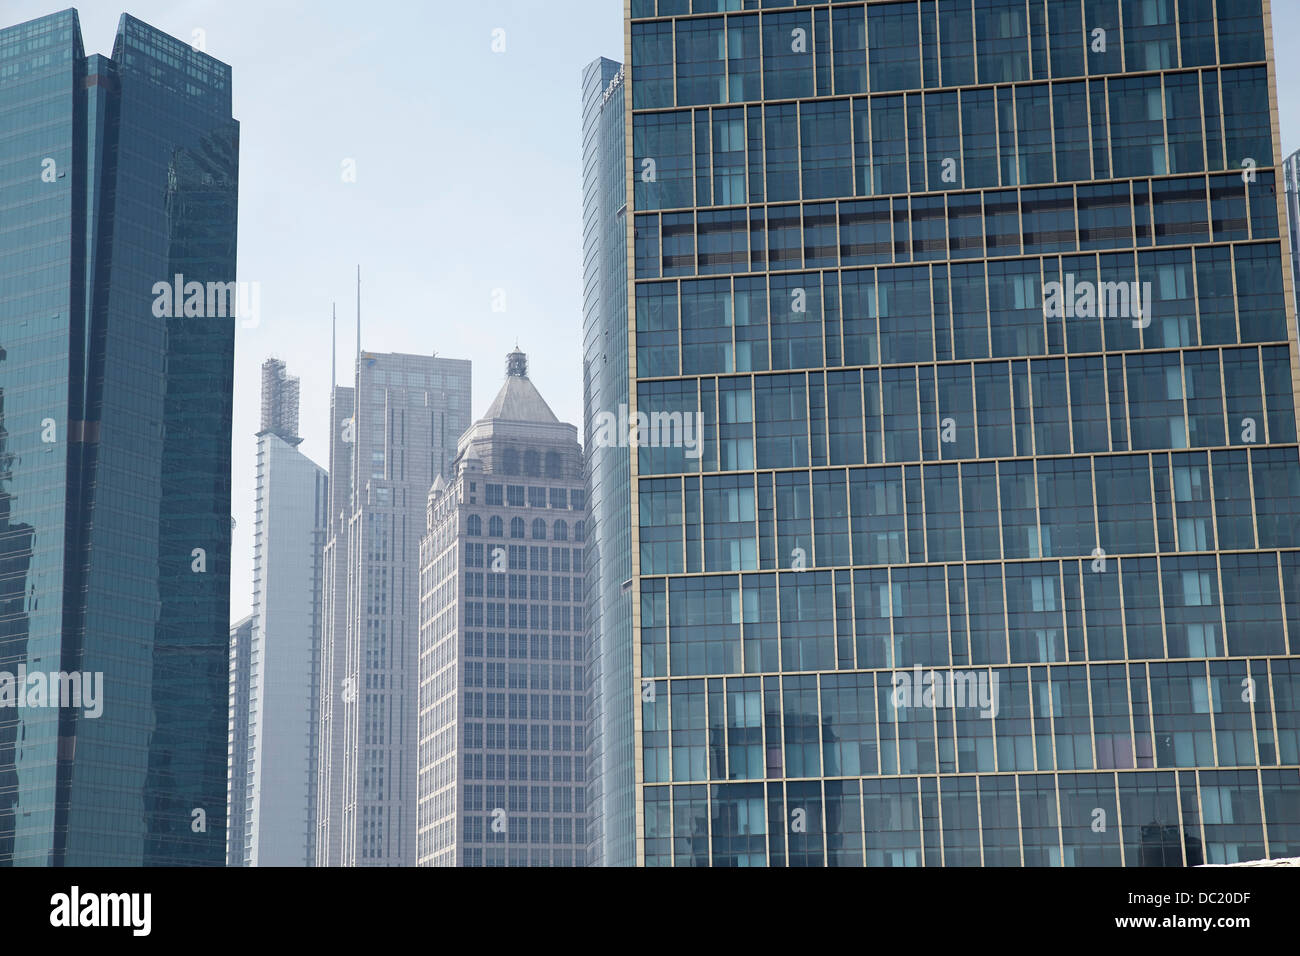 Large skyscrapers in Shanghai, China - Stock Image